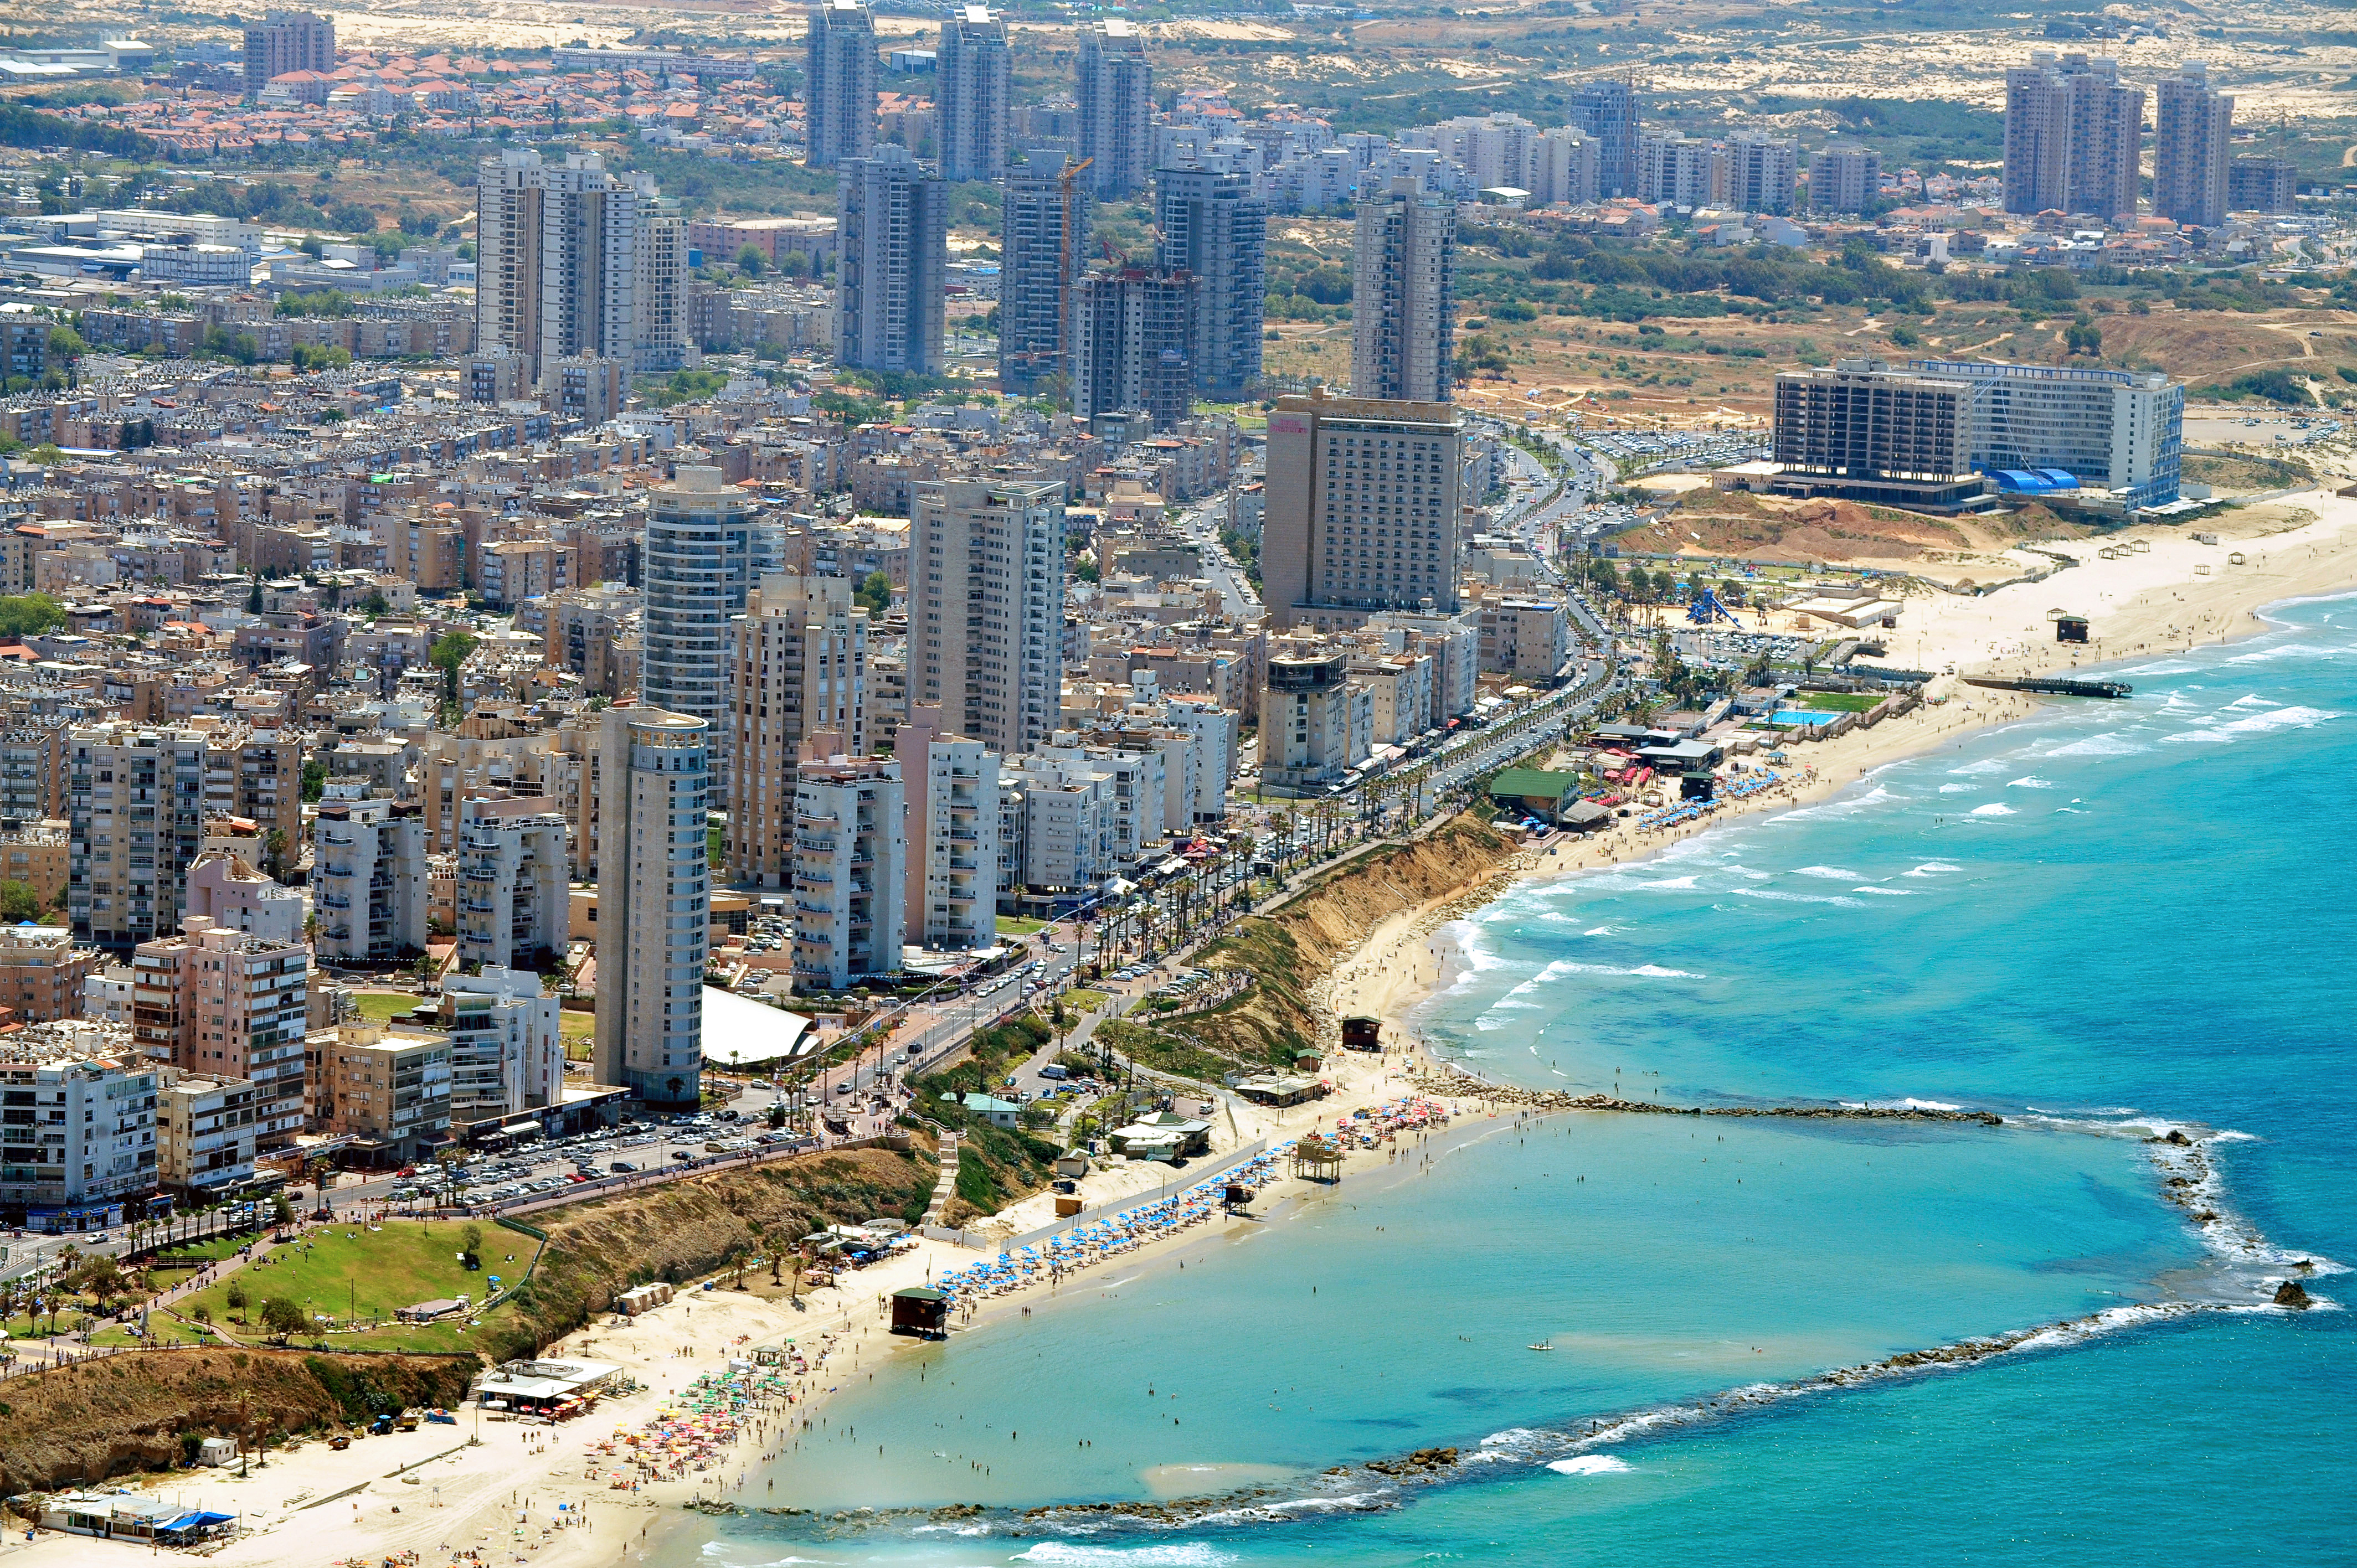 bat yam milf personals Located on the mediterranean sea only 15 minutes south of tel aviv, bat yam is  israel's 12th largest city, home to 160,000 residents (30% of whom are new.